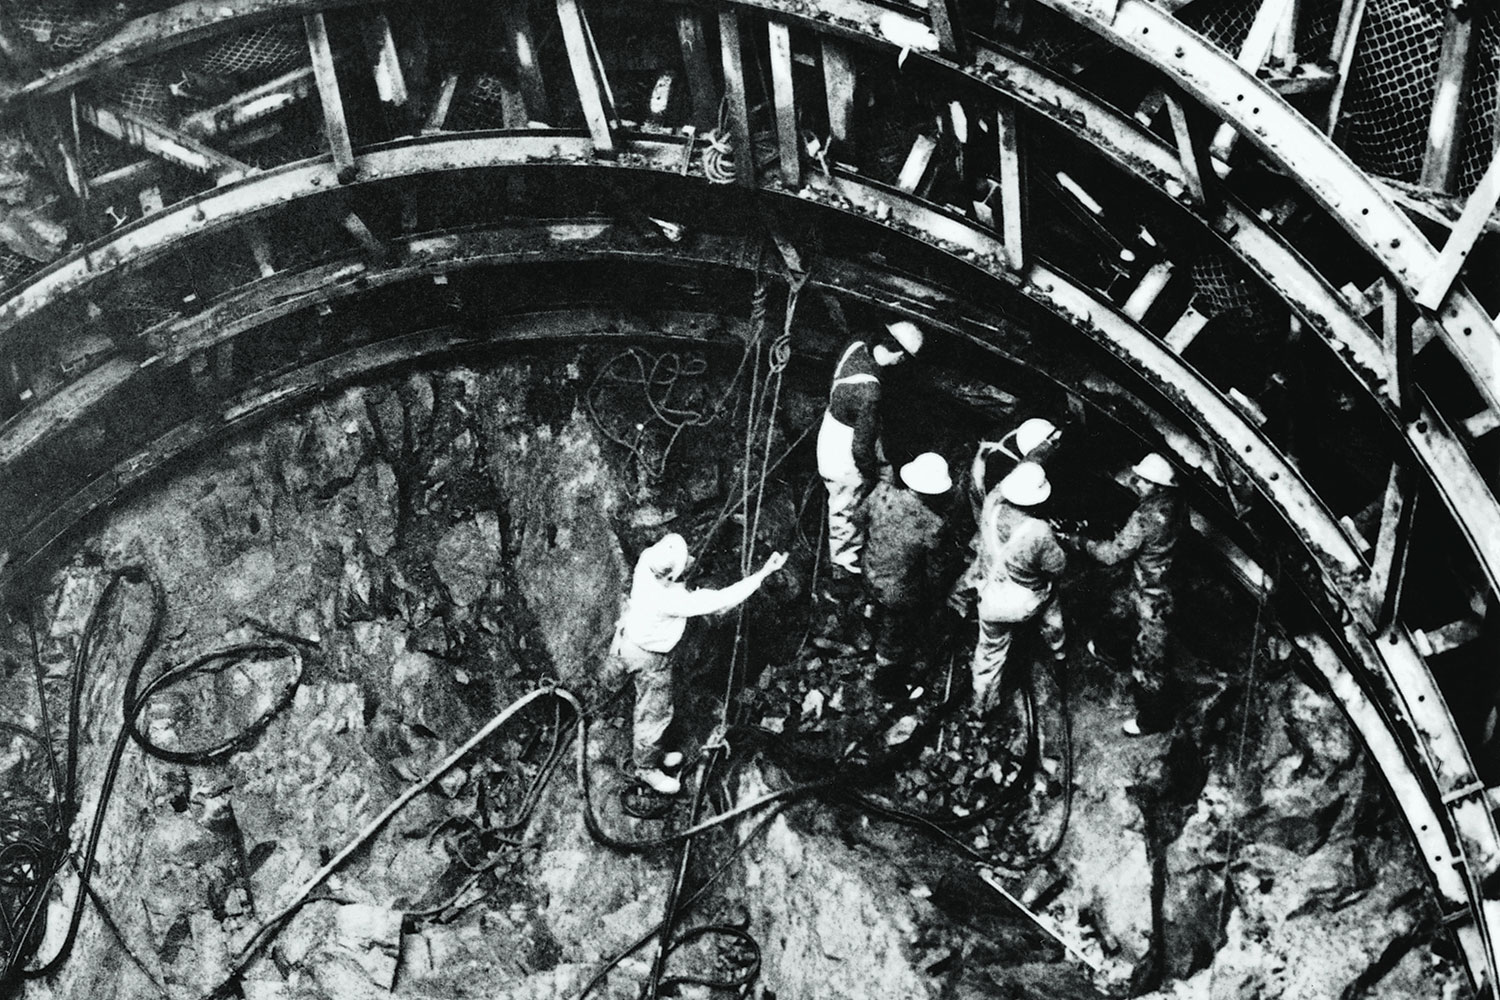 Work underway on the Murray surge tank in 1965.(Image: National Archives of Australia/Fairfax Media)